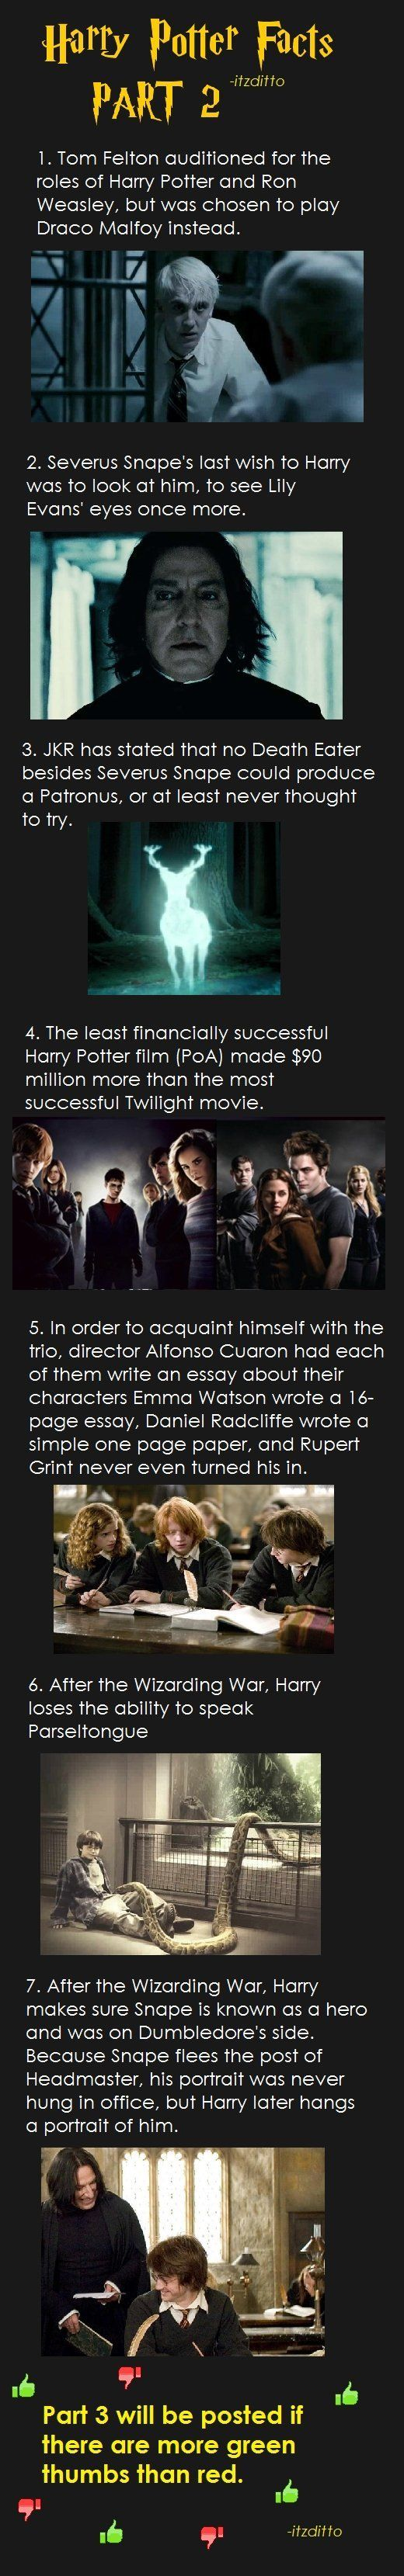 Harry Potter Facts Part 2 - Imgur Aaaand... Tom Felton was chosen as Draco because he made the director's son cry..